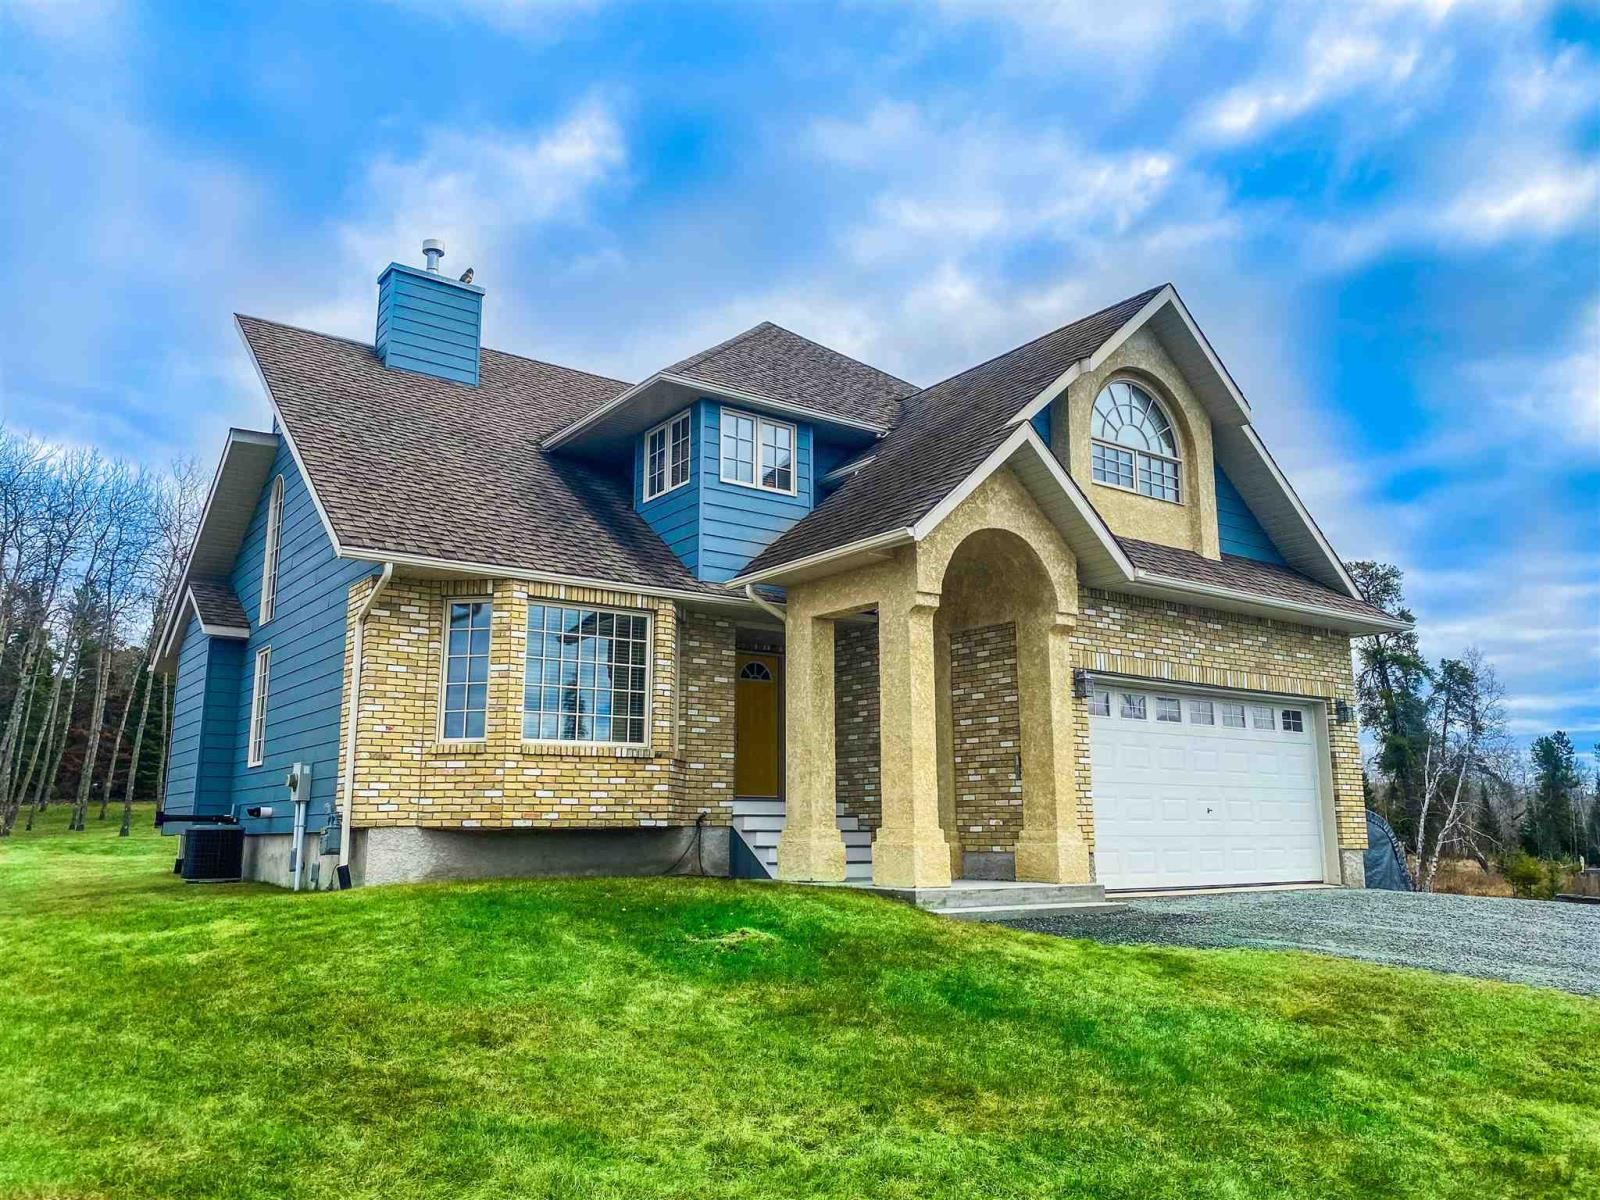 Main Photo: 397 Airport Road in Kenora: House for sale : MLS®# TB211220